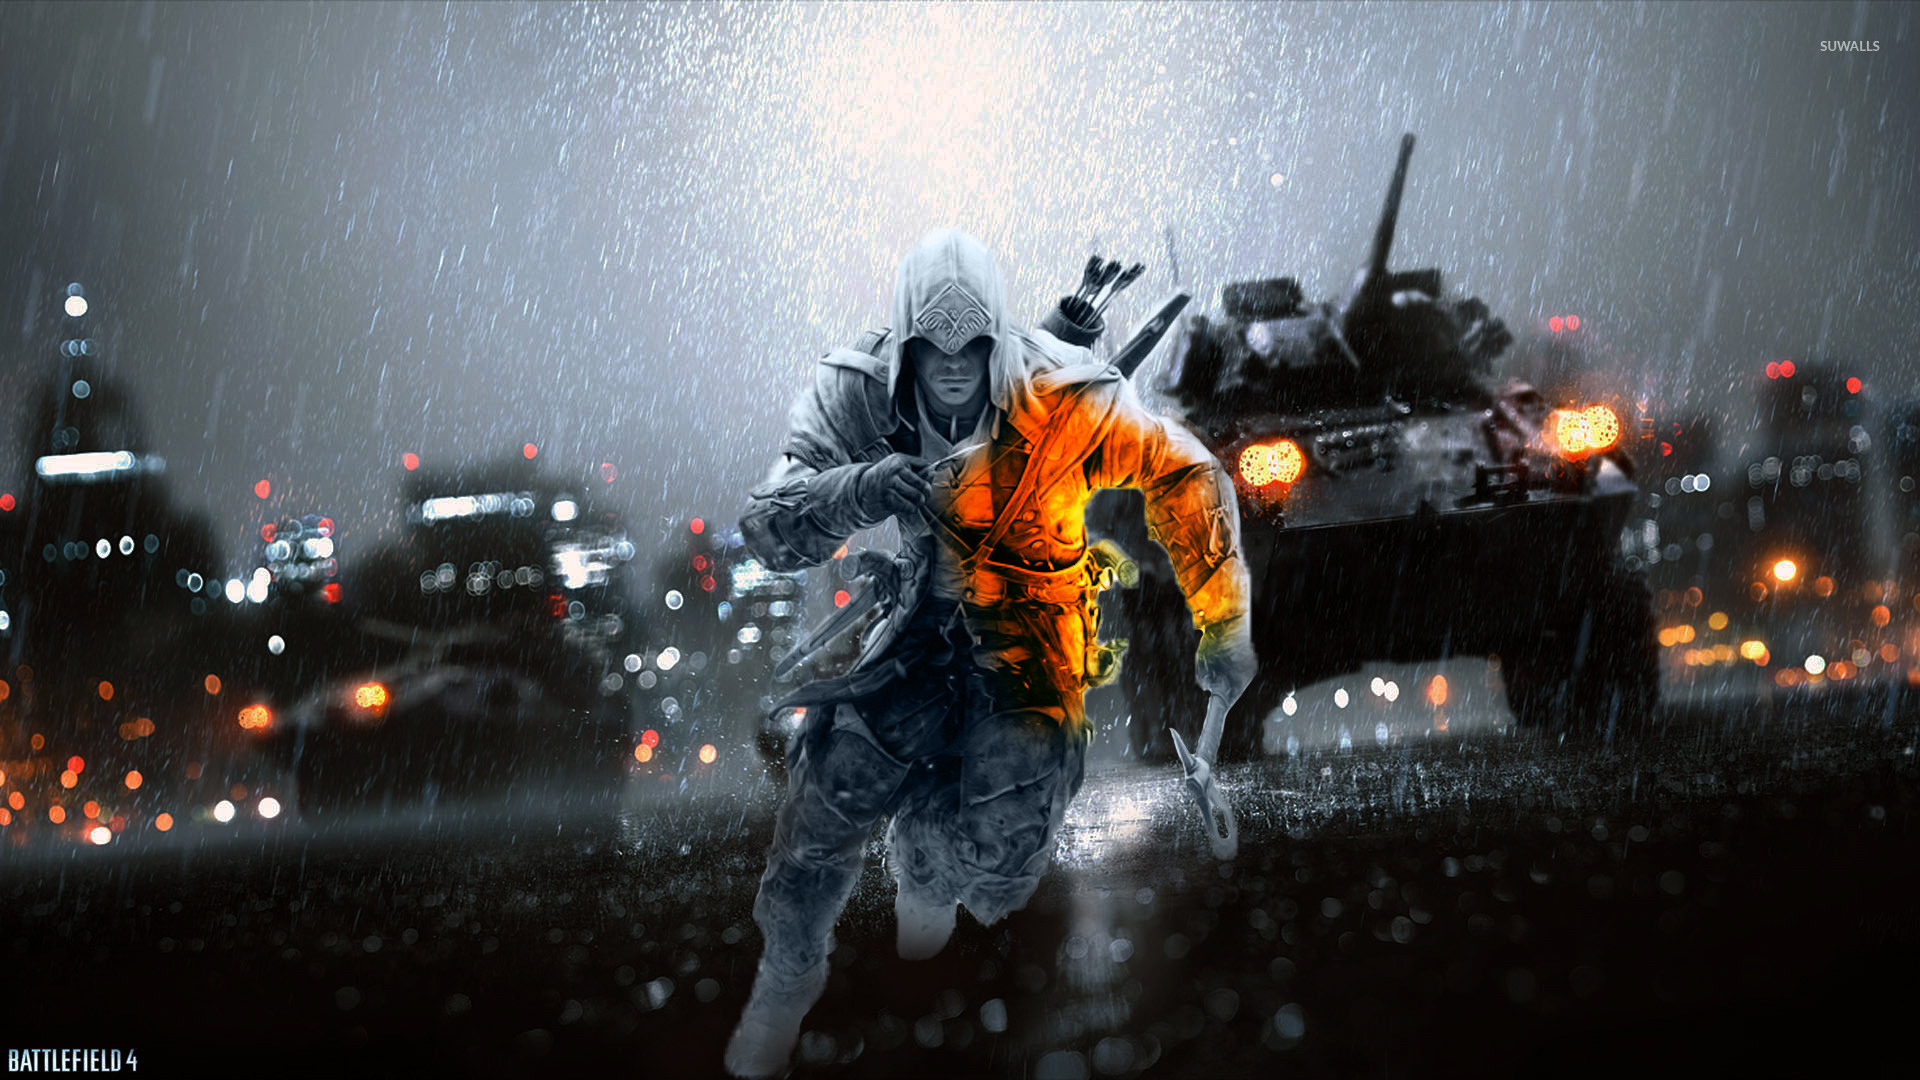 Battlefield 4 1920x1080 Connor   battlefield 4 1920x1080